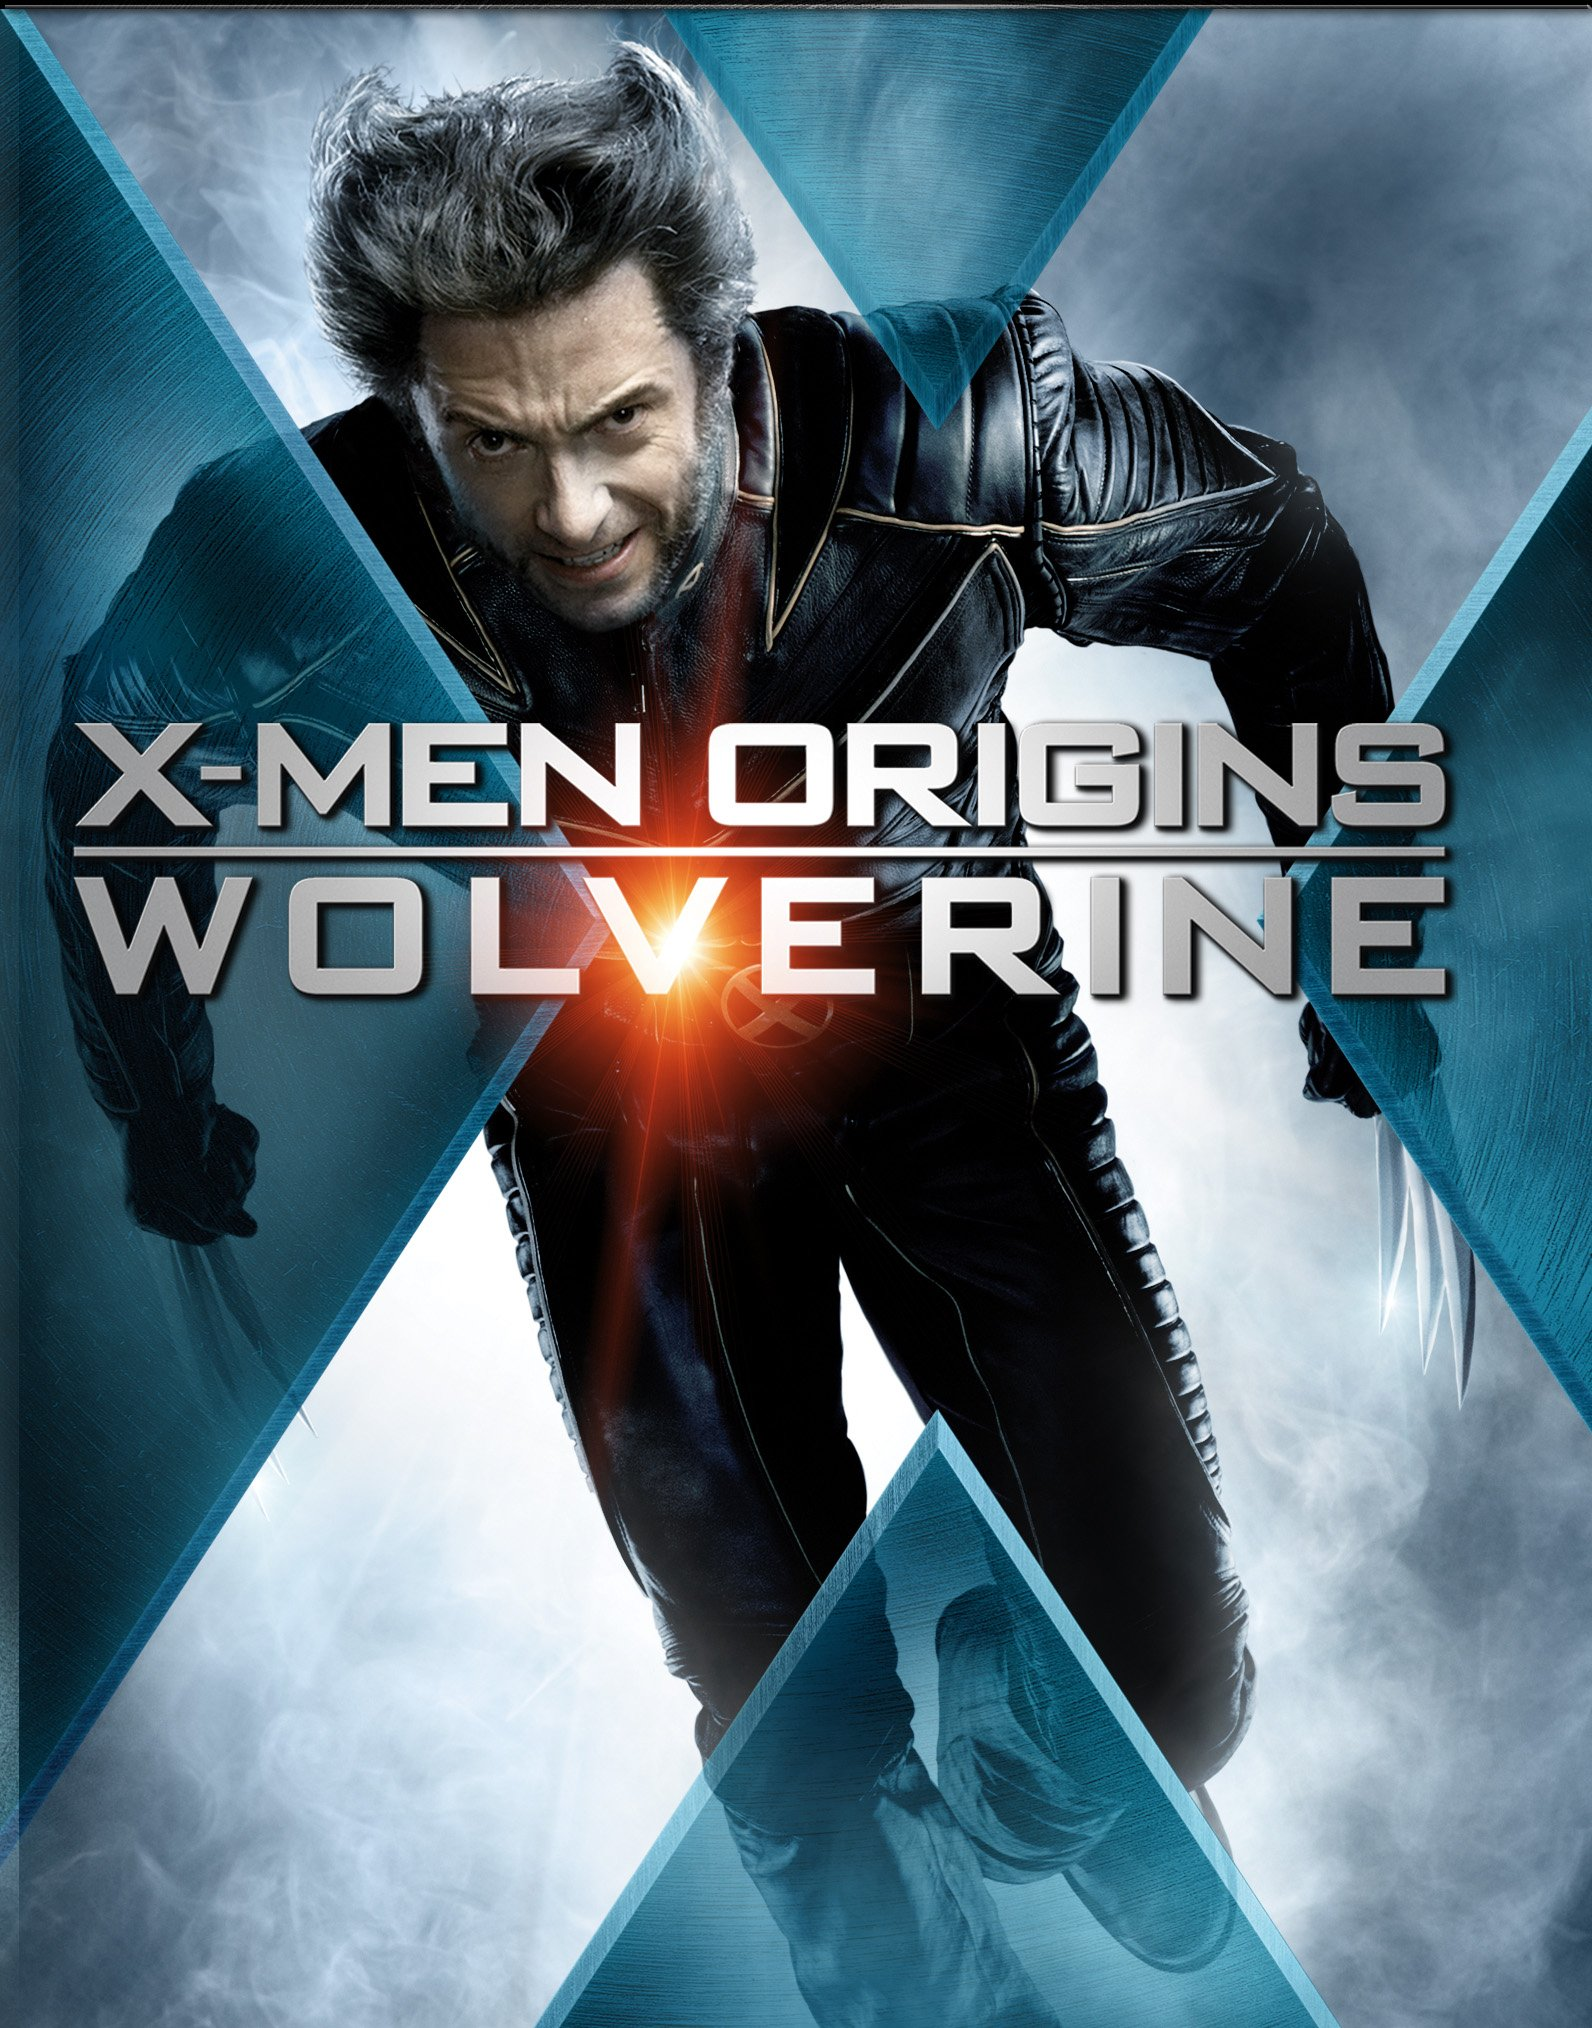 Amazon.com: X-Men Origins: Wolverine: World Premiere: 20th ...